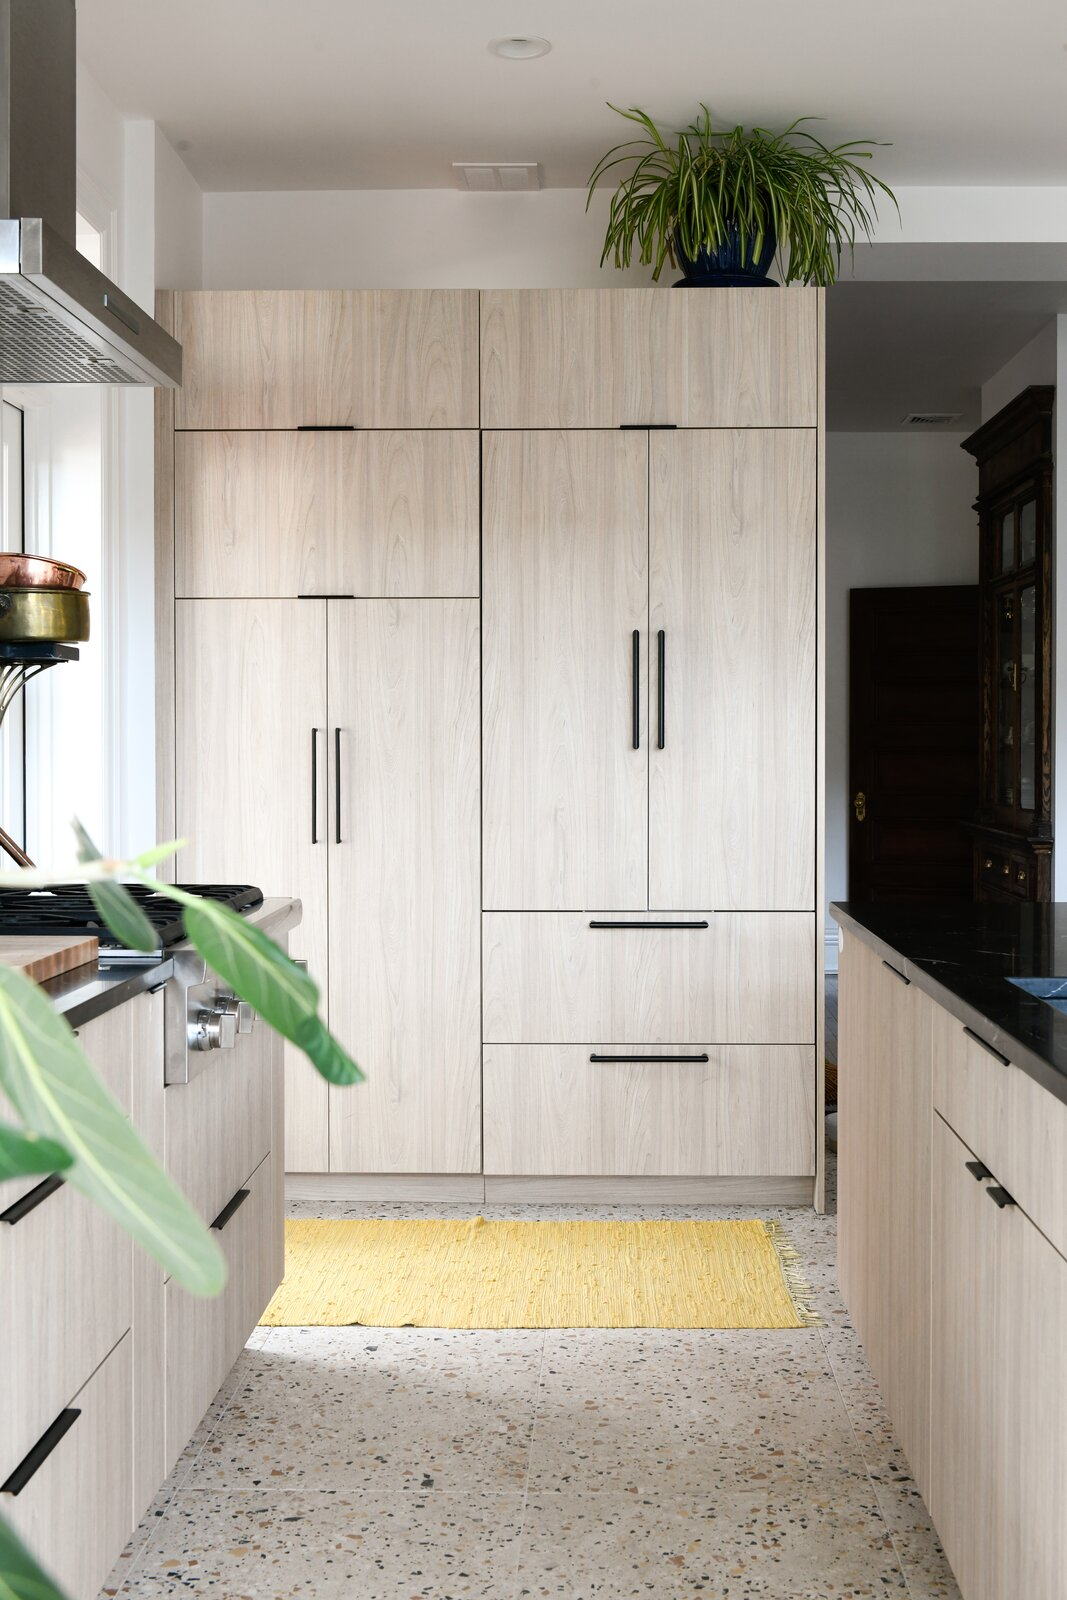 Kitchen of McAdams/Aversa by Von Walter + funk